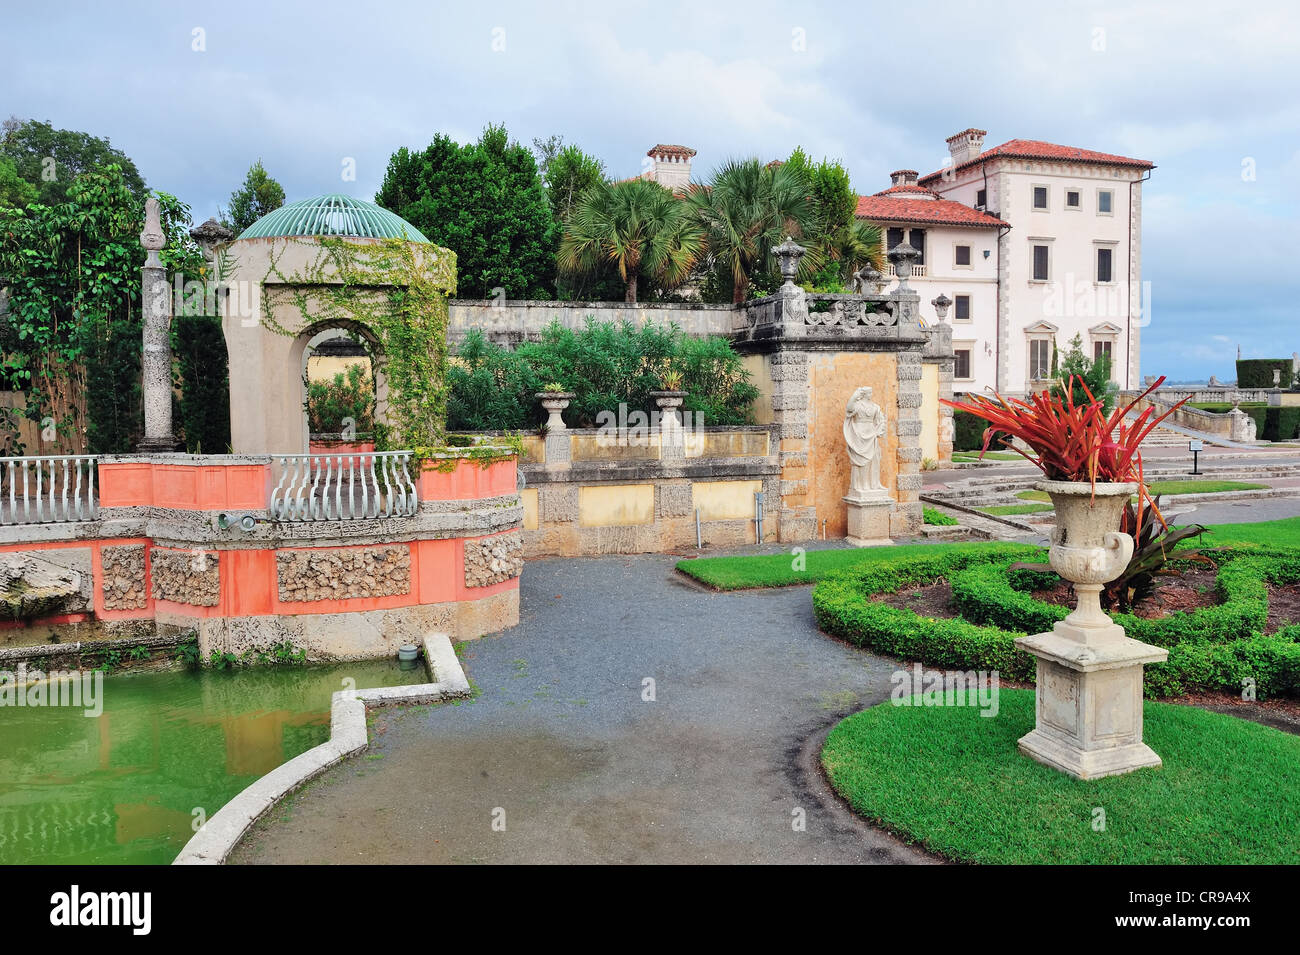 Miami Vizcaya museum garden view Stock Photo 48763370 Alamy